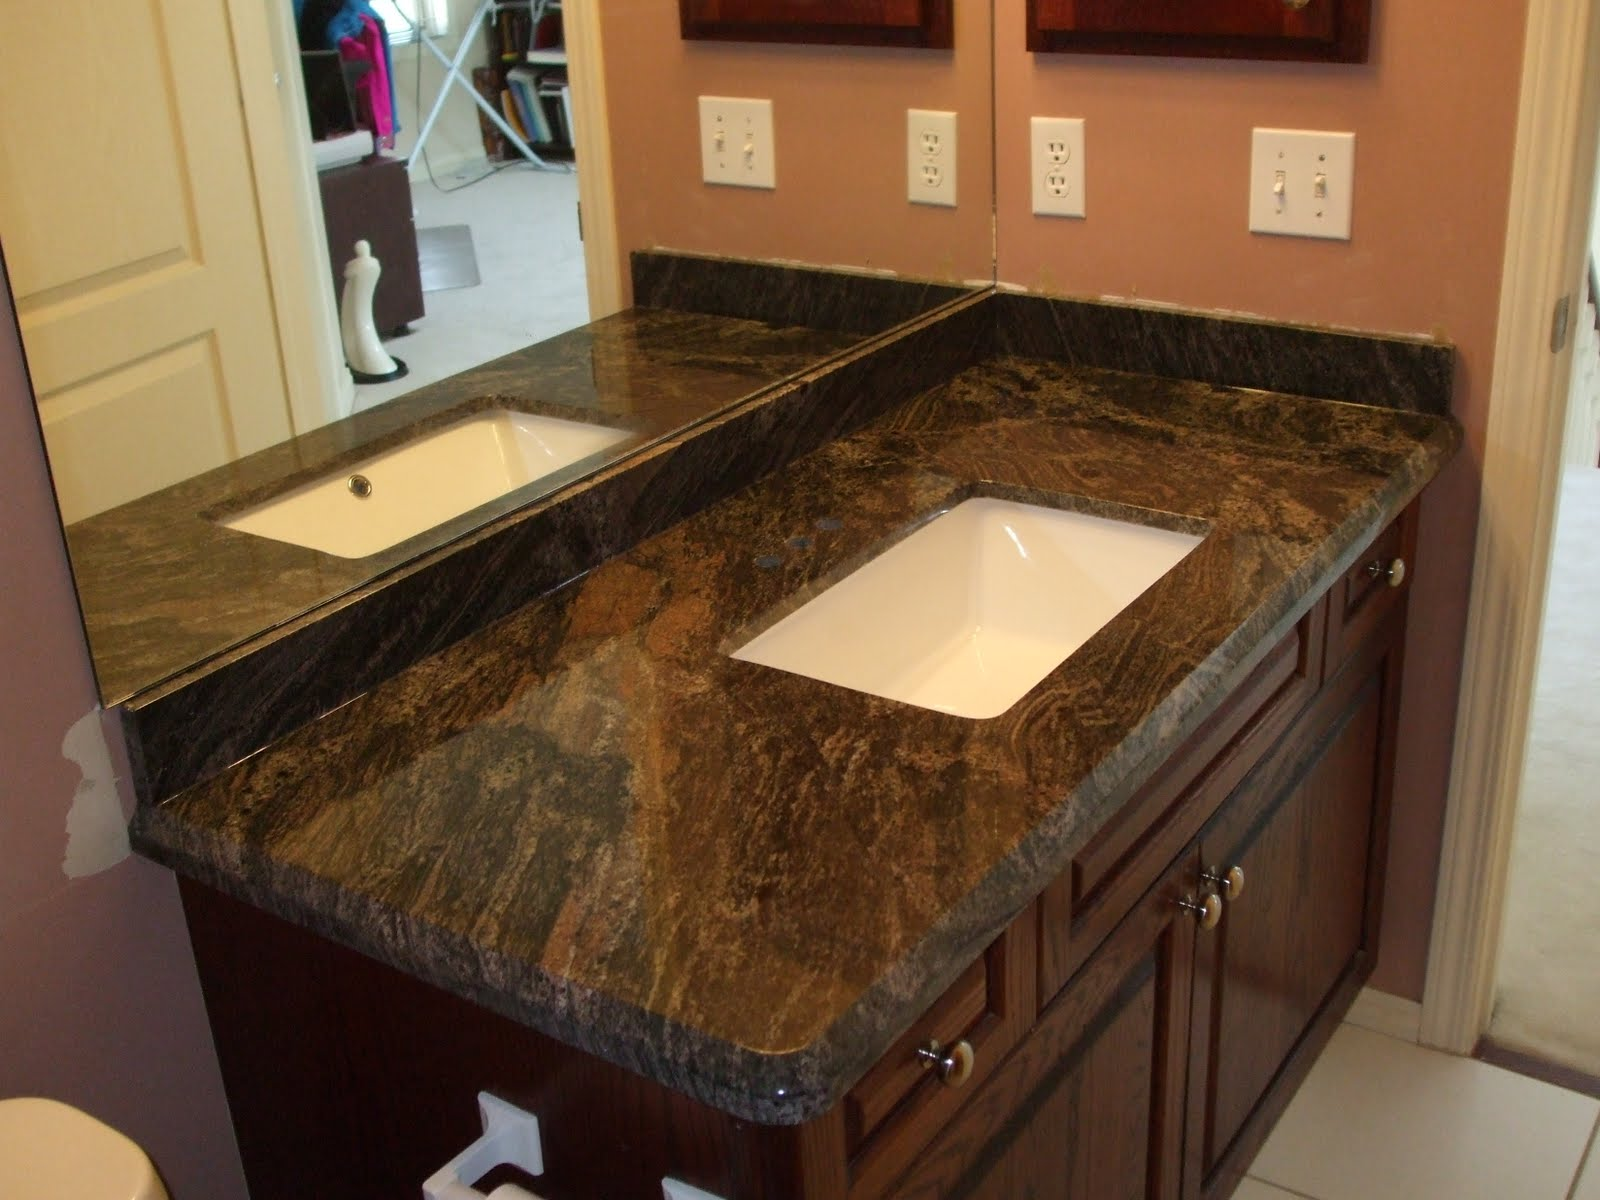 Top Granite : Granite Countertops 1024x768 Juparana Lapidus Granite Countertops 3587 ...